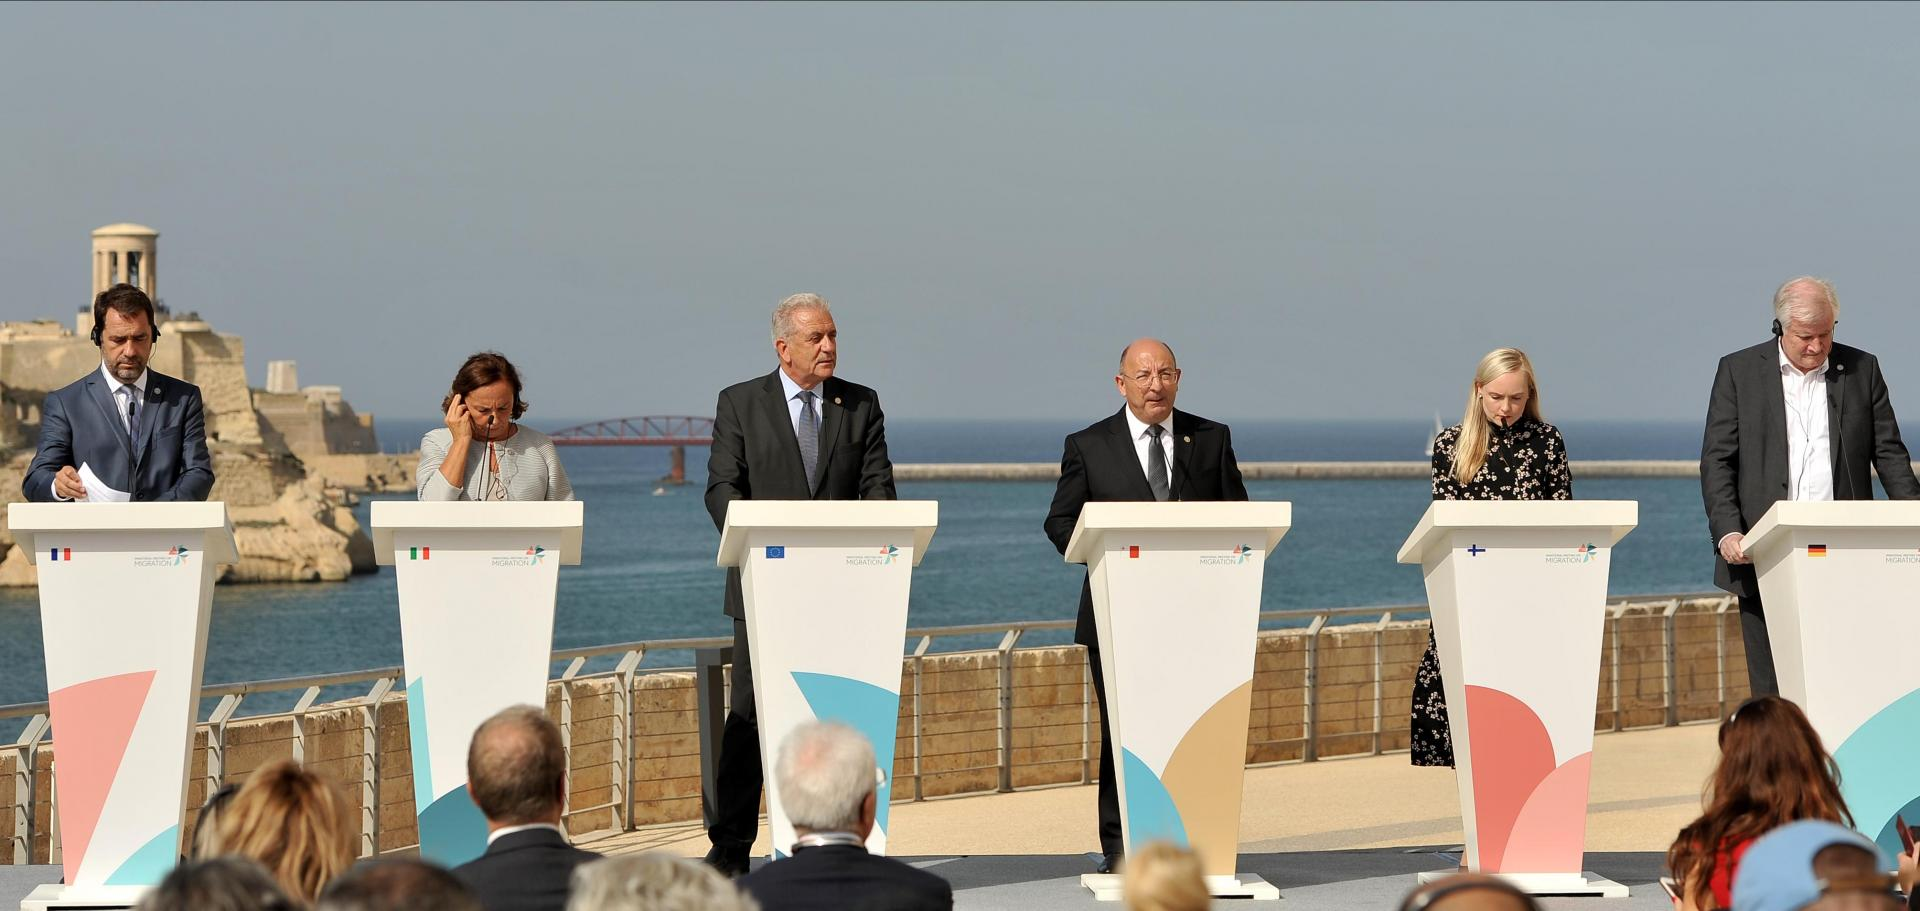 From left: French minister Christophe Castaner, Italian minister Luciana Lamorgese, EU Commissioner Dimitris Avramopoulos, Maltese minister Michael Farrugia, Finnish minister Maria Ohisalo and German minister Horst Seehofer. Photo: Chris Sant Fournier